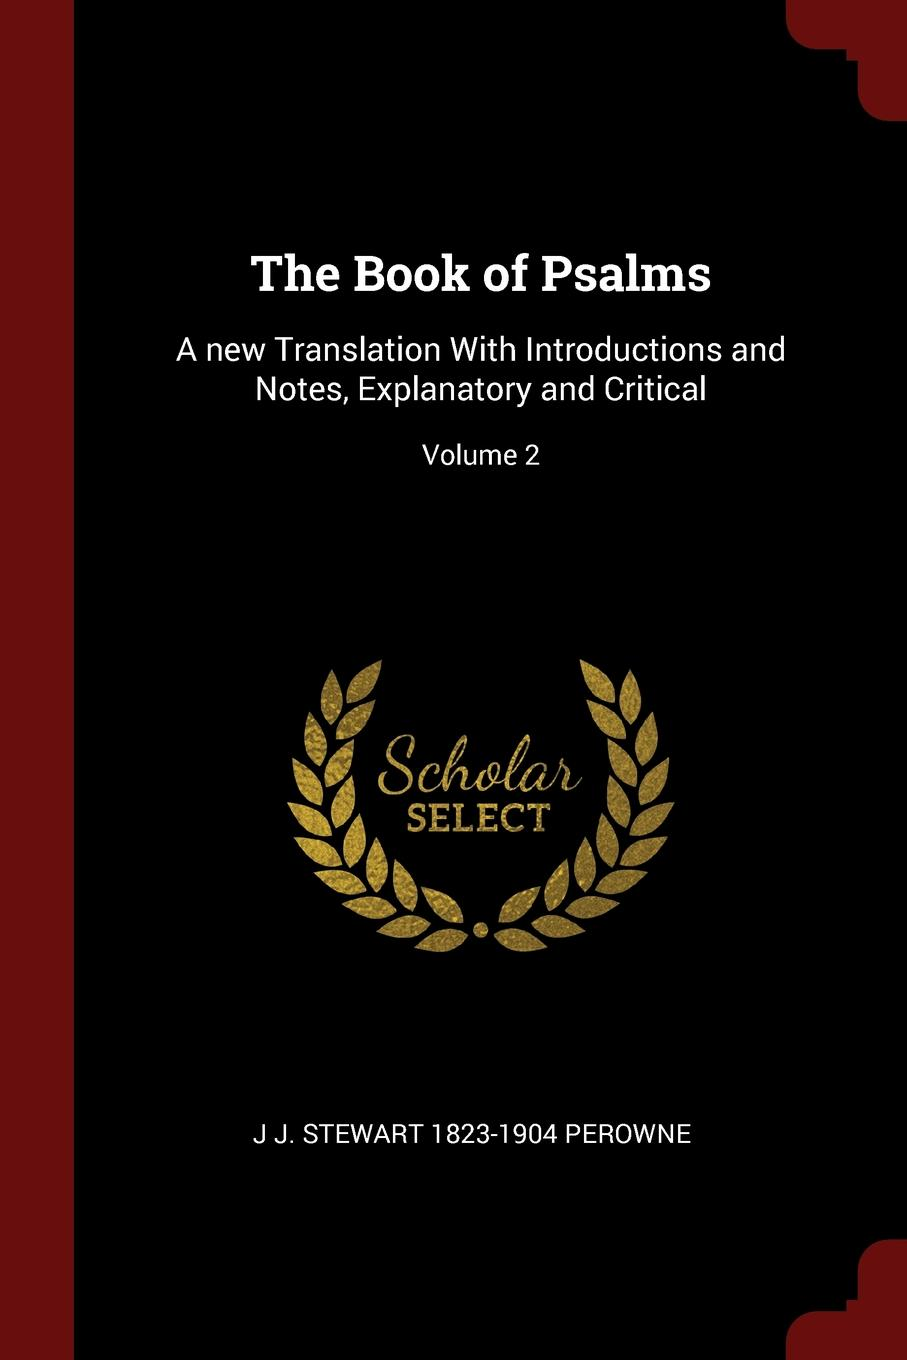 The Book of Psalms. A new Translation With Introductions and Notes, Explanatory and Critical; Volume 2